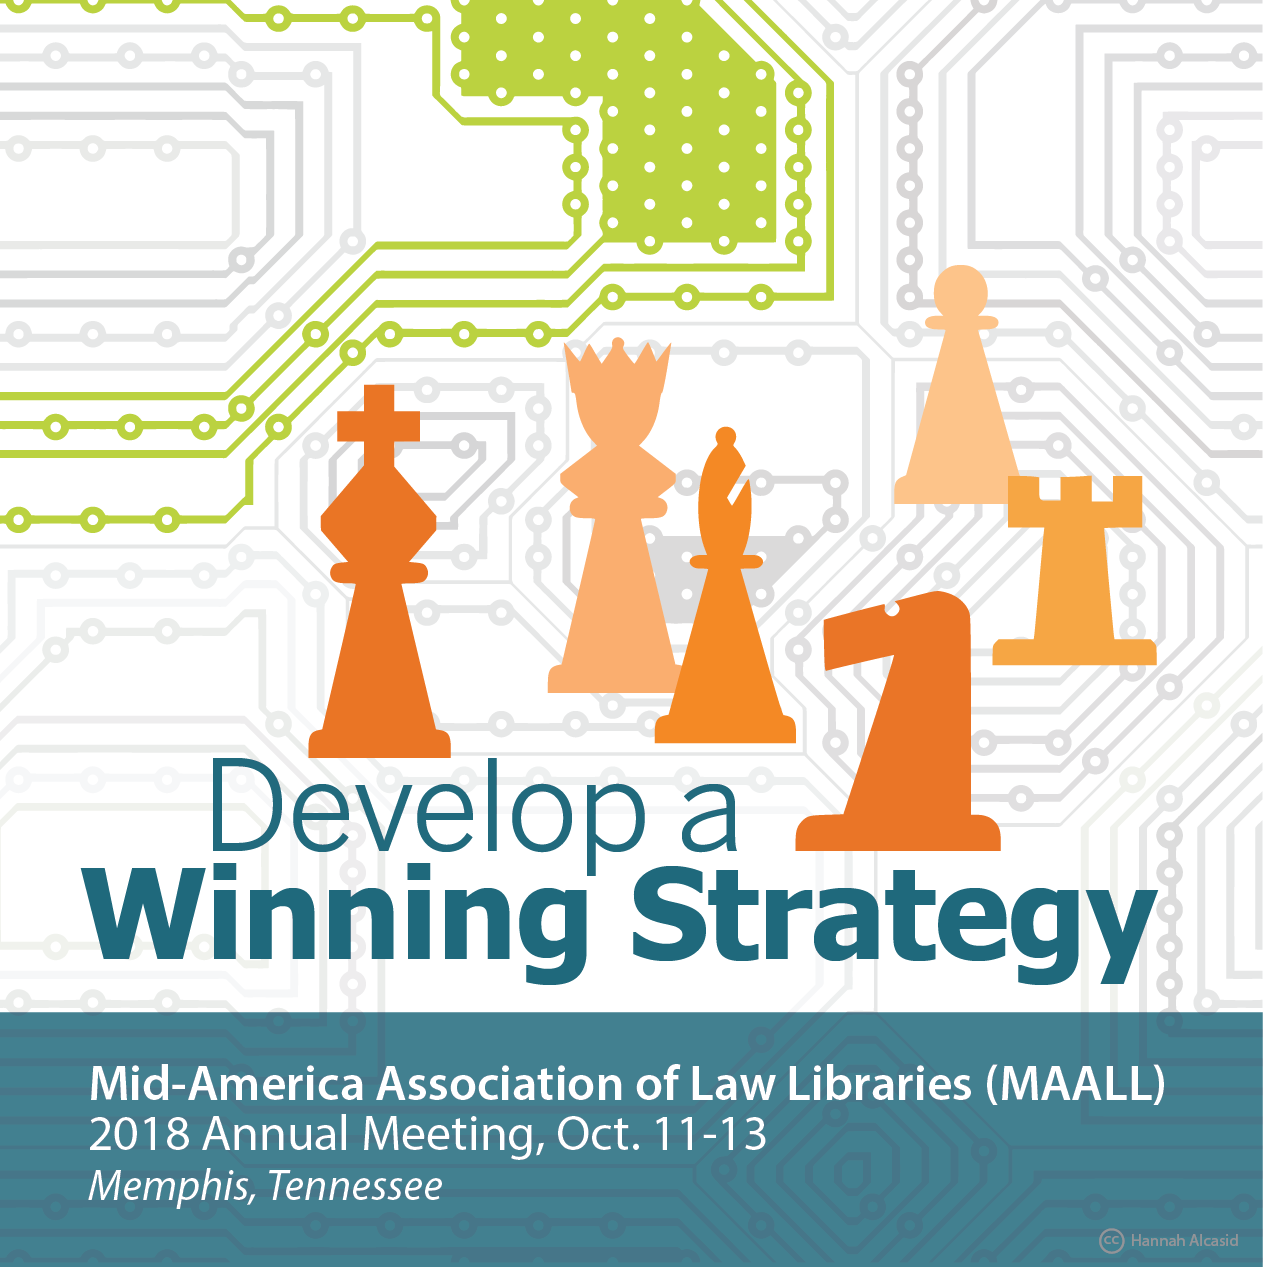 Develop a Winning Strategy 2018 MAALL Meeting logo